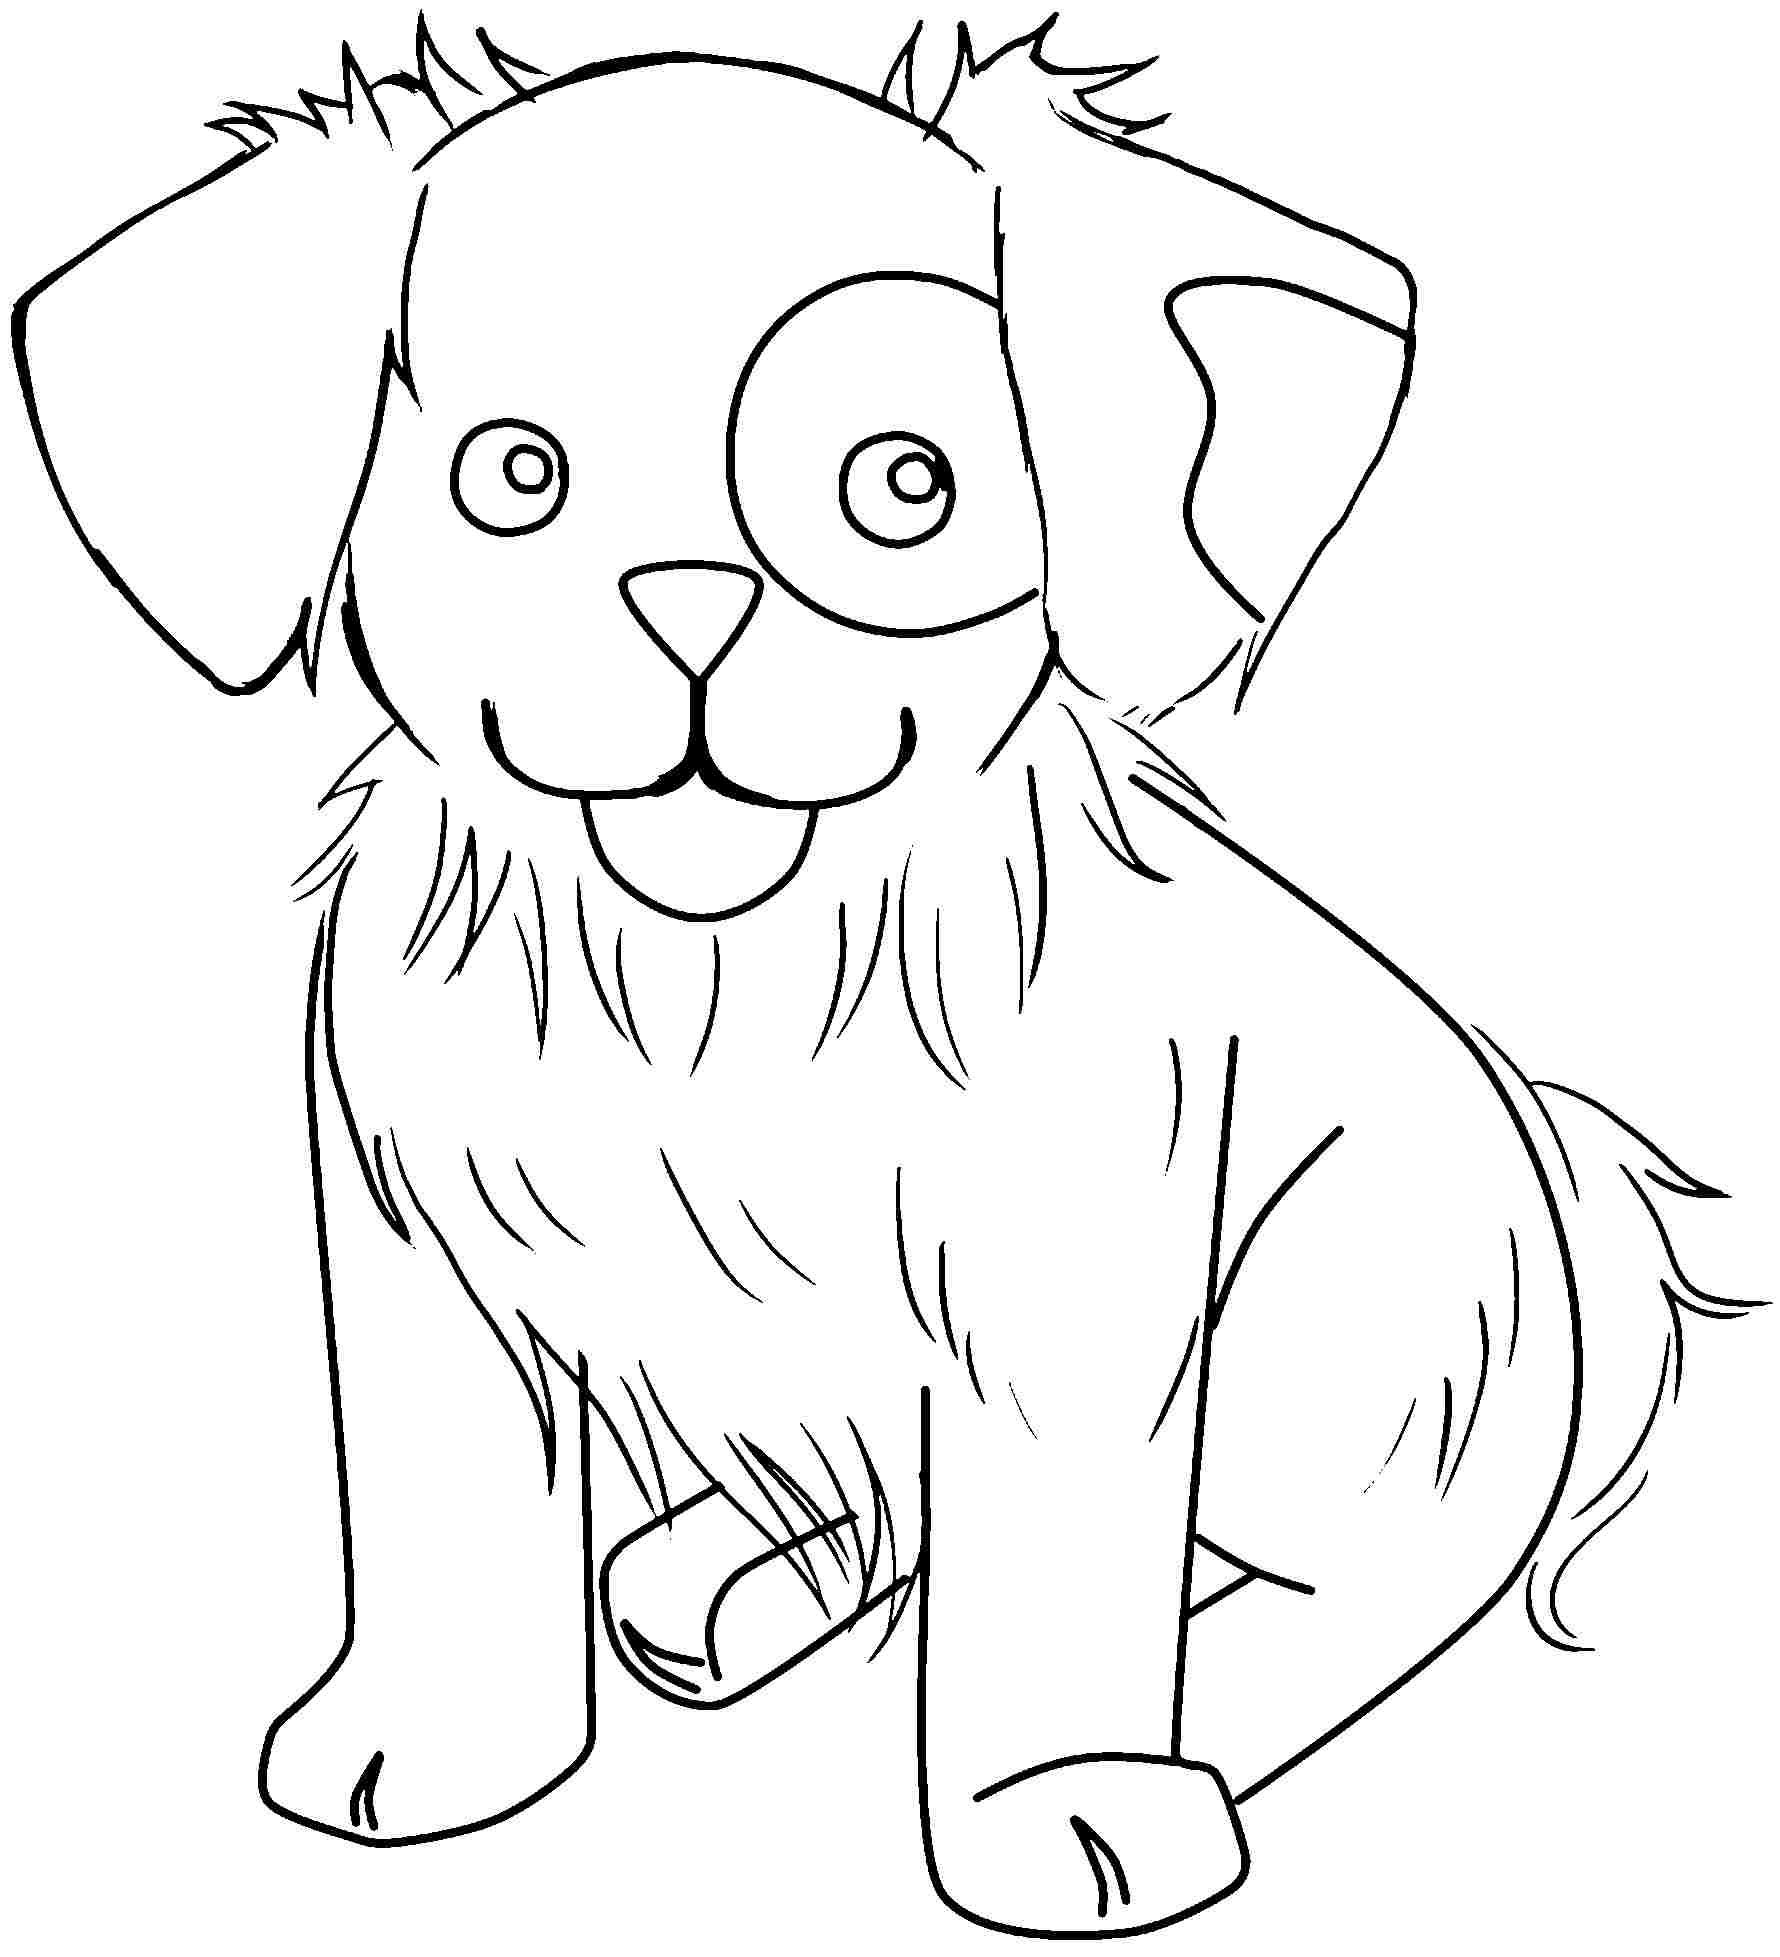 Printable Dog Coloring Pages Cute Dogs